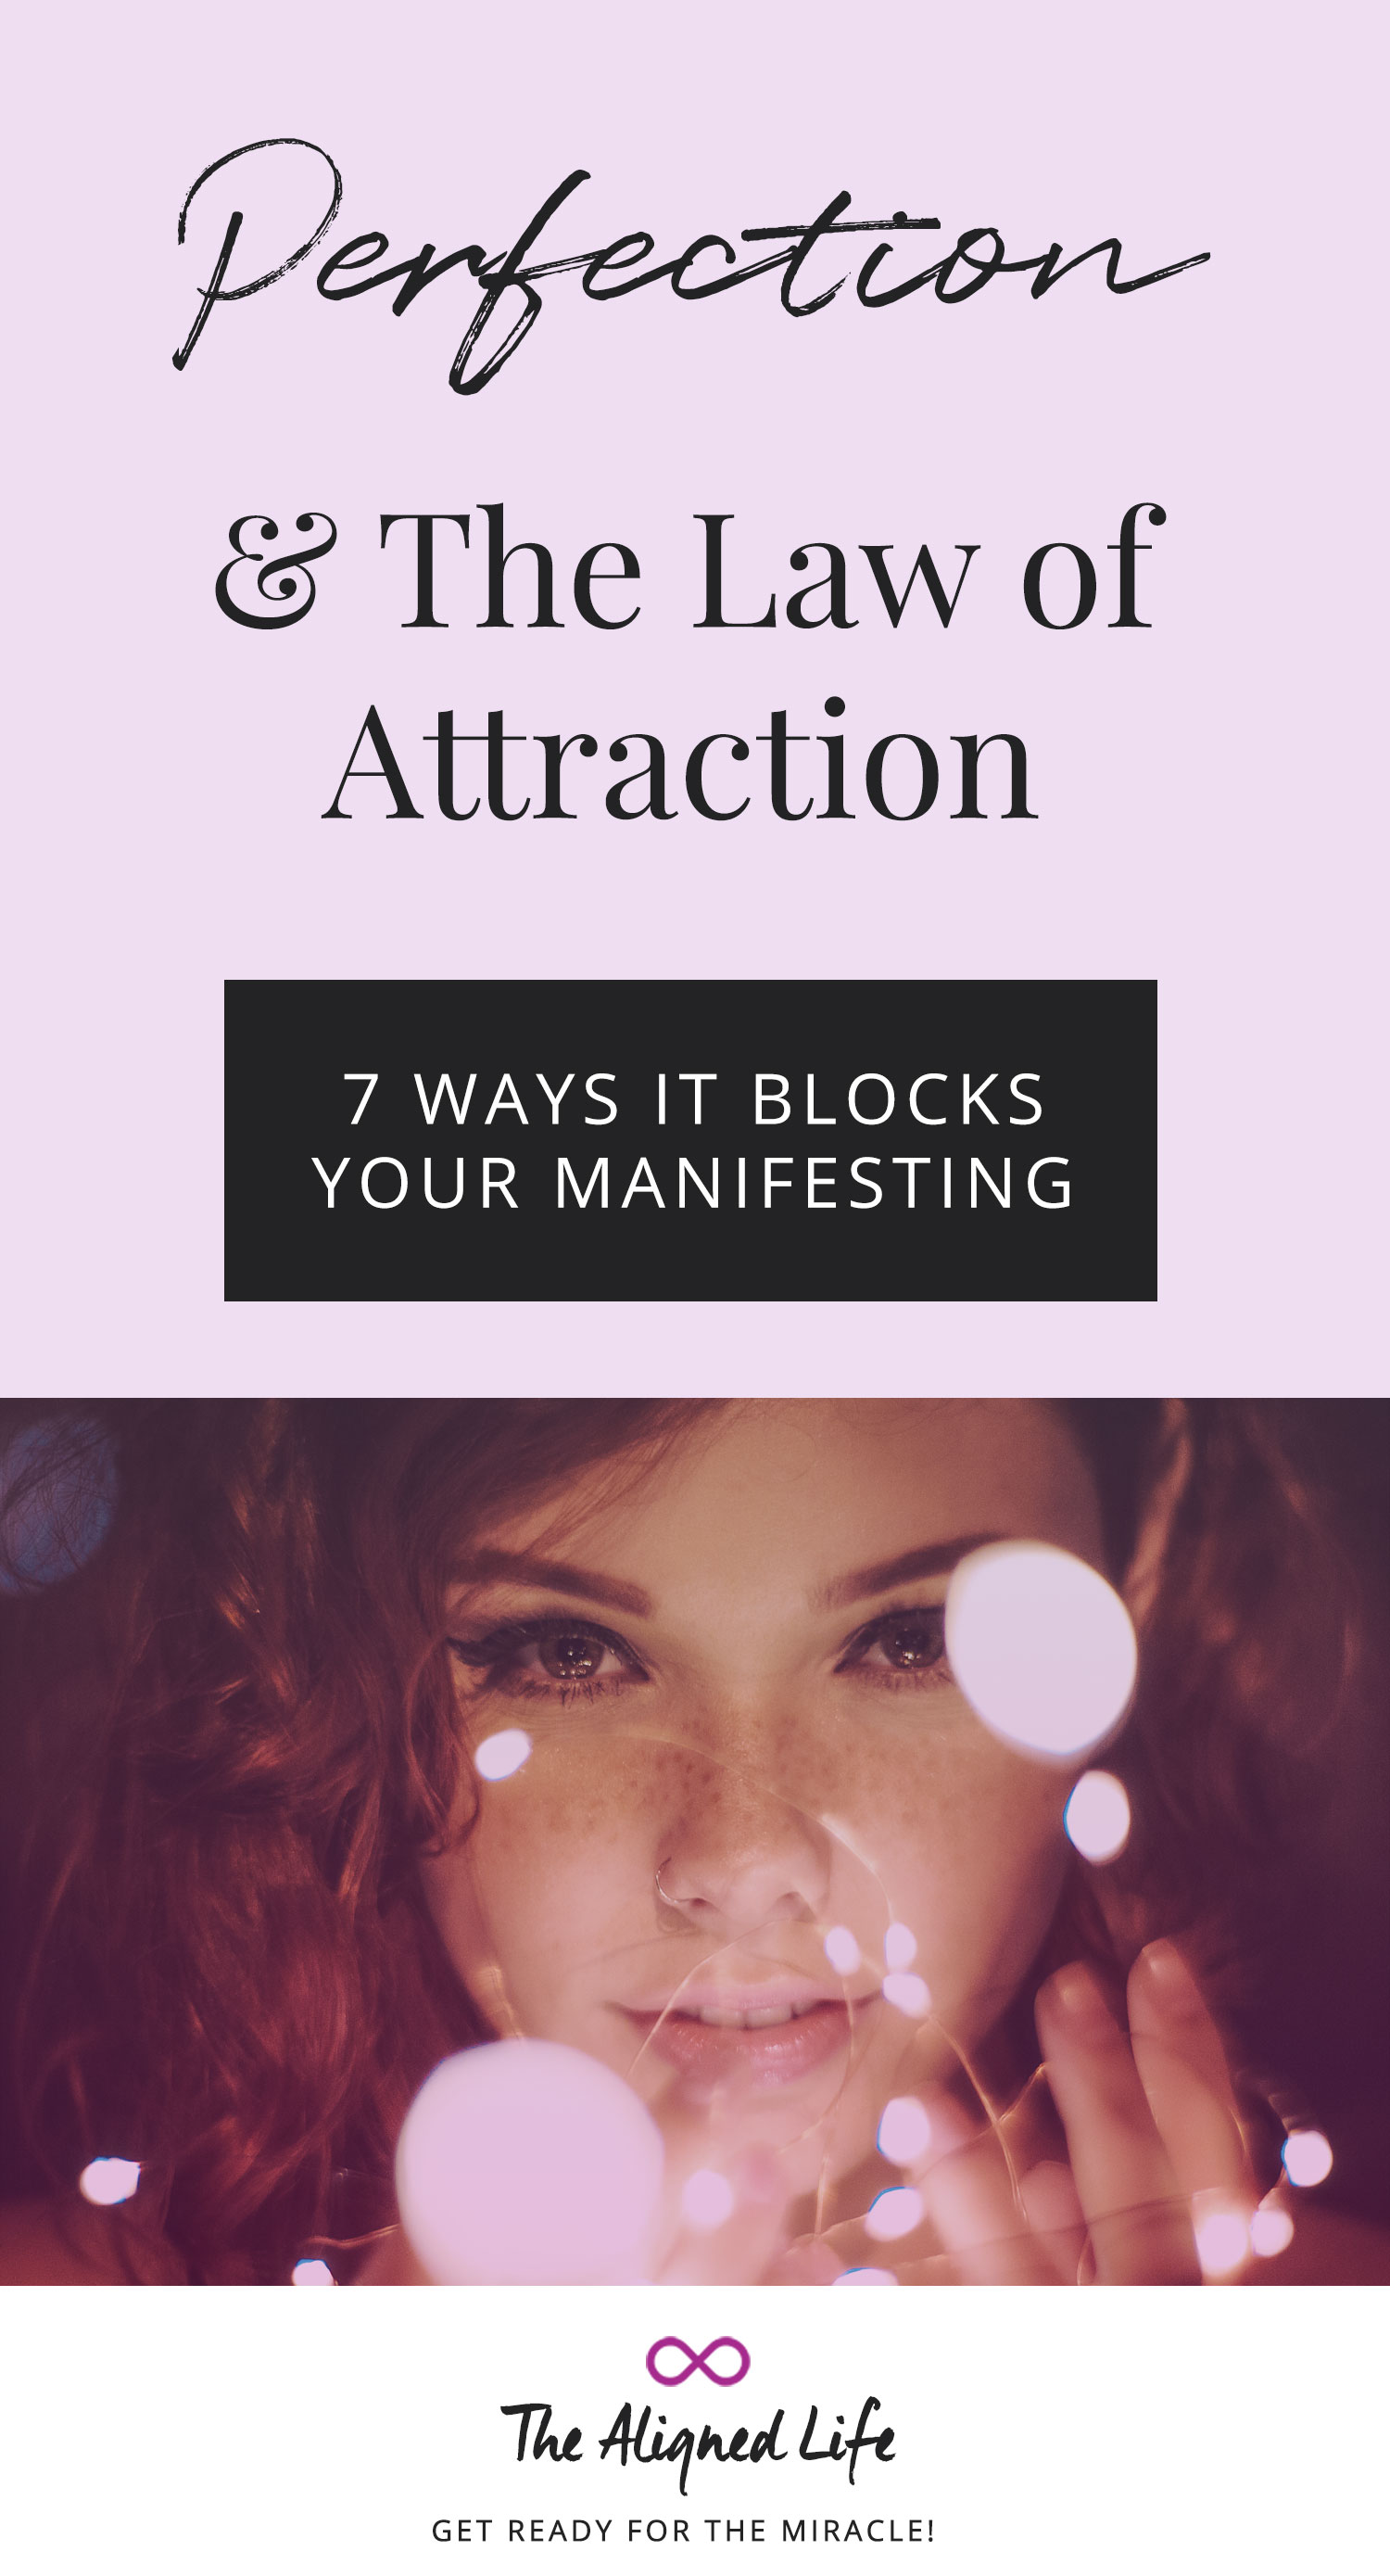 Perfection & The Law of Attraction: 7 Ways It Blocks Your Manifesting